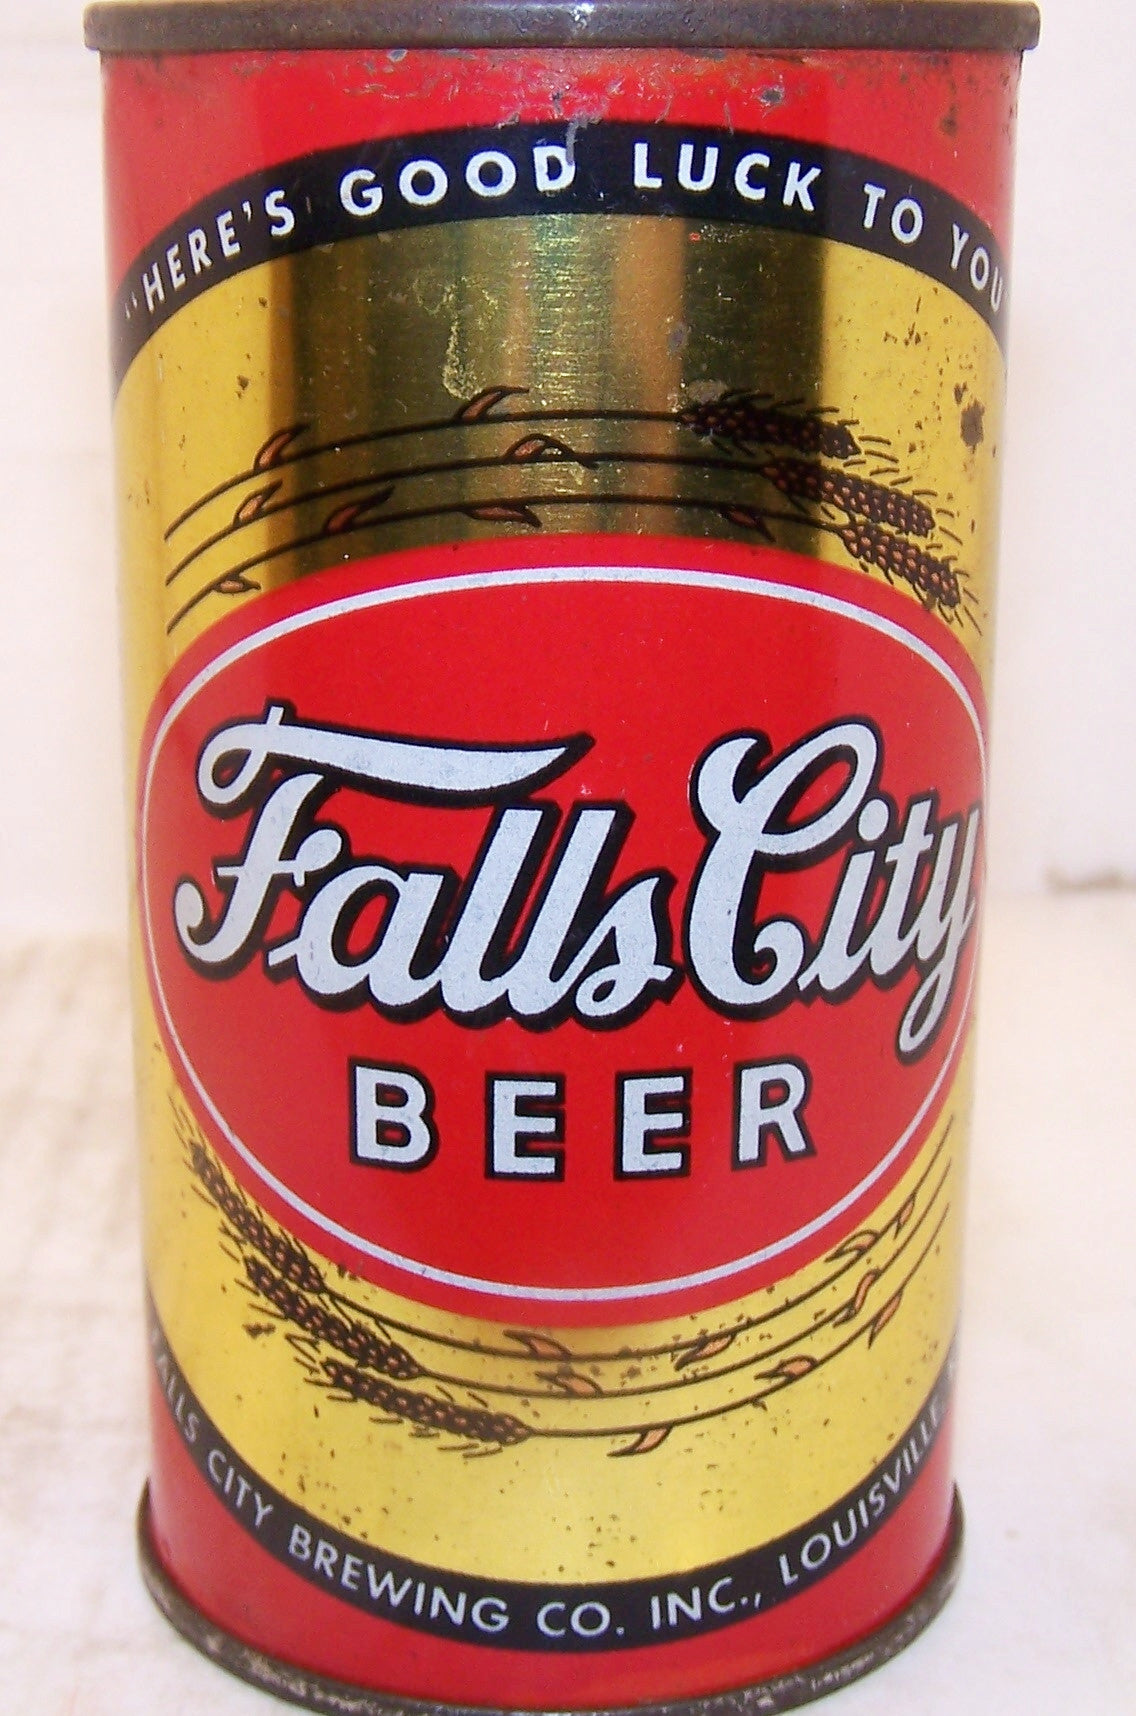 Falls City Beer, Lilek page # 257, Grade 1/1- Sold on 4/15/15